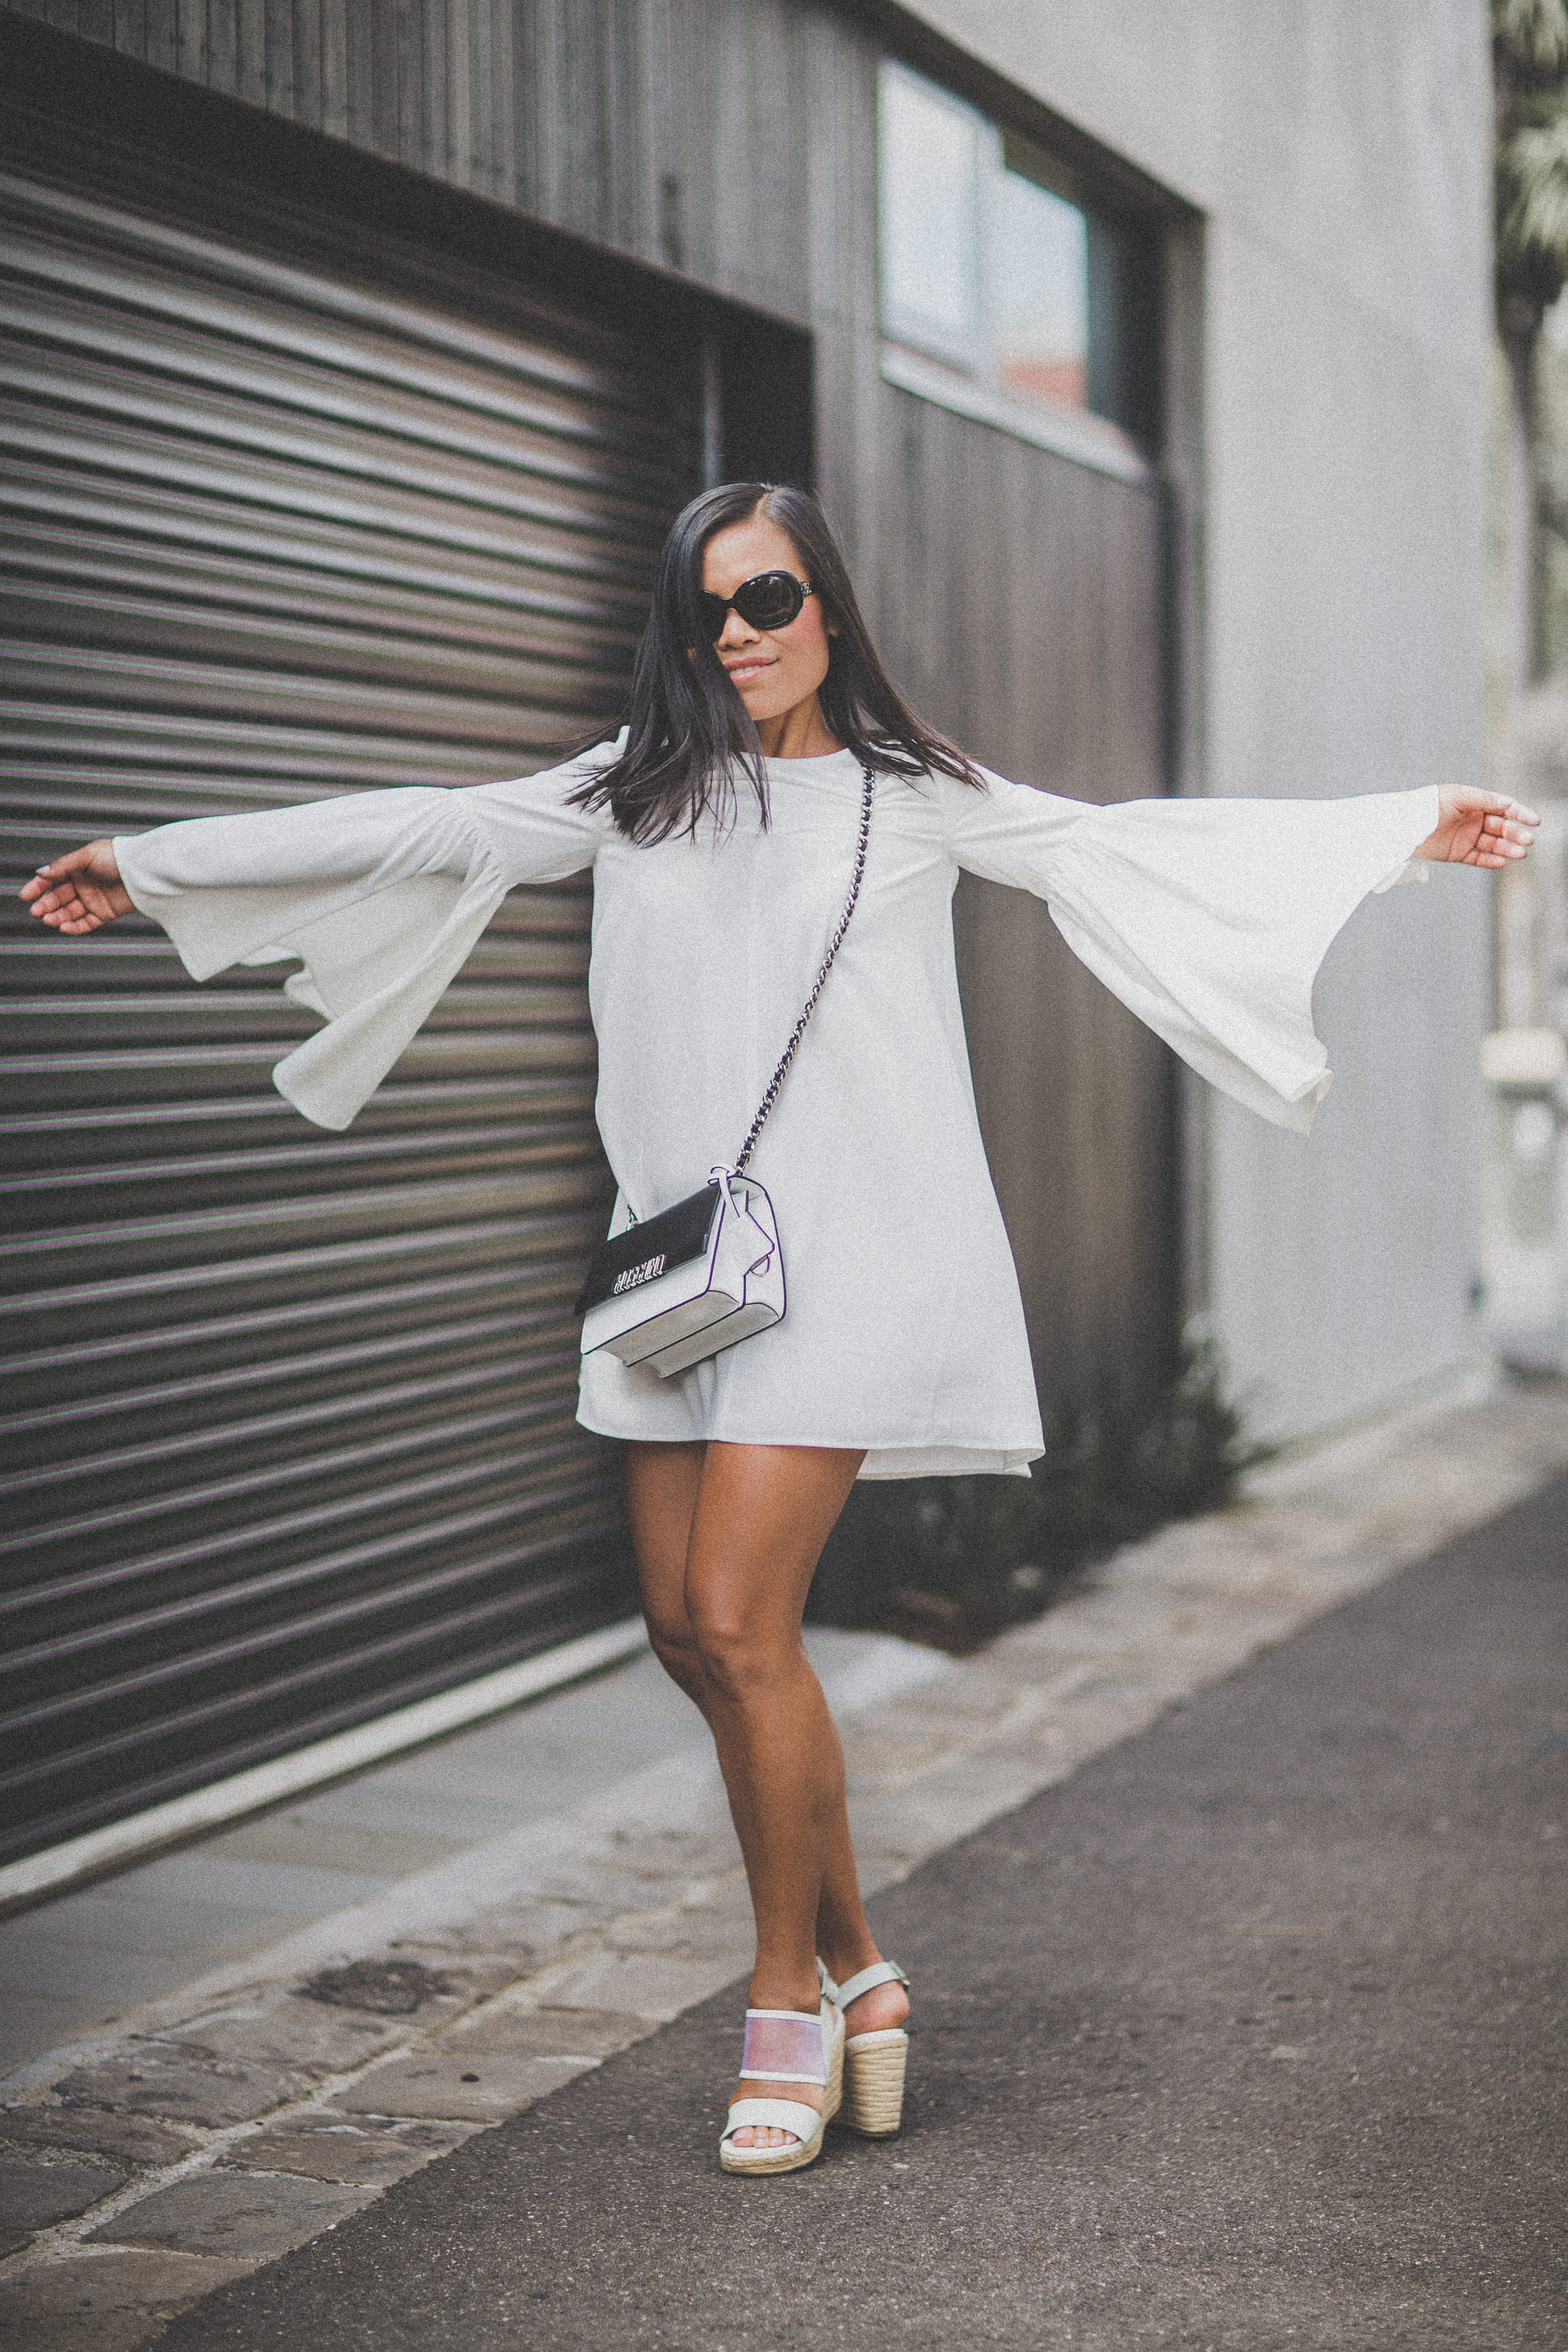 creative commercial fashion photography melbourne - sleeve dress in white - farfetch